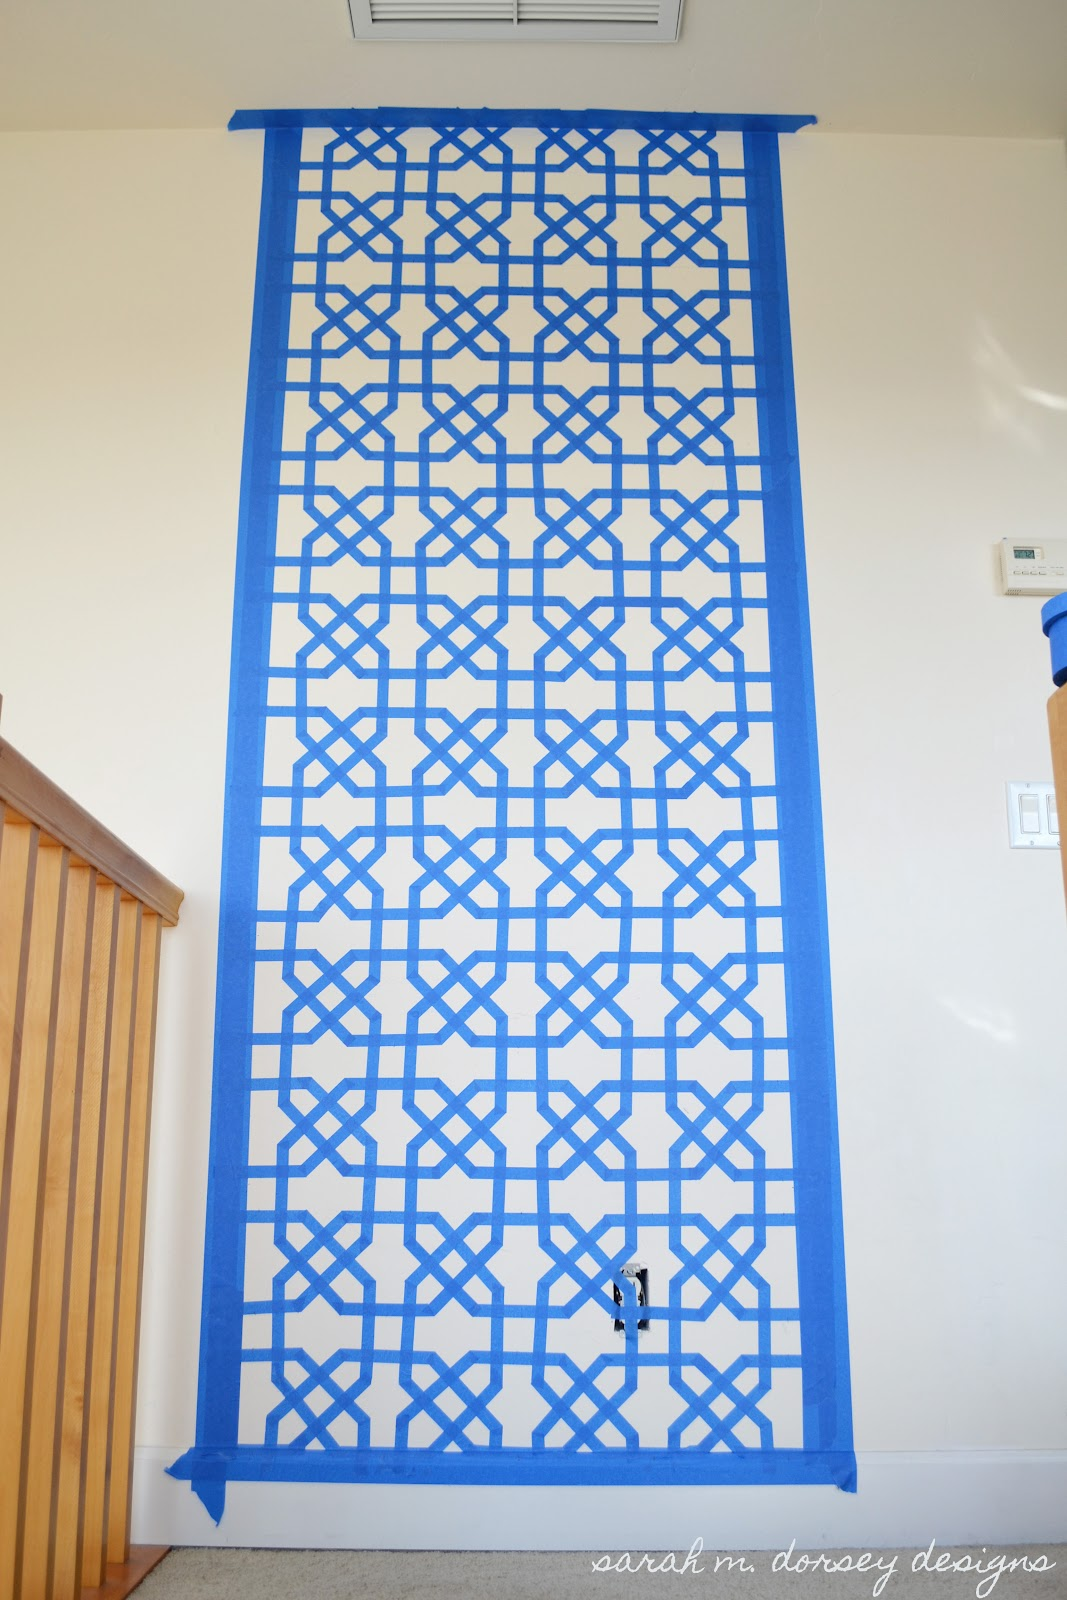 Sarah m dorsey designs moorish insprired wall and frame for Wall designs using tape